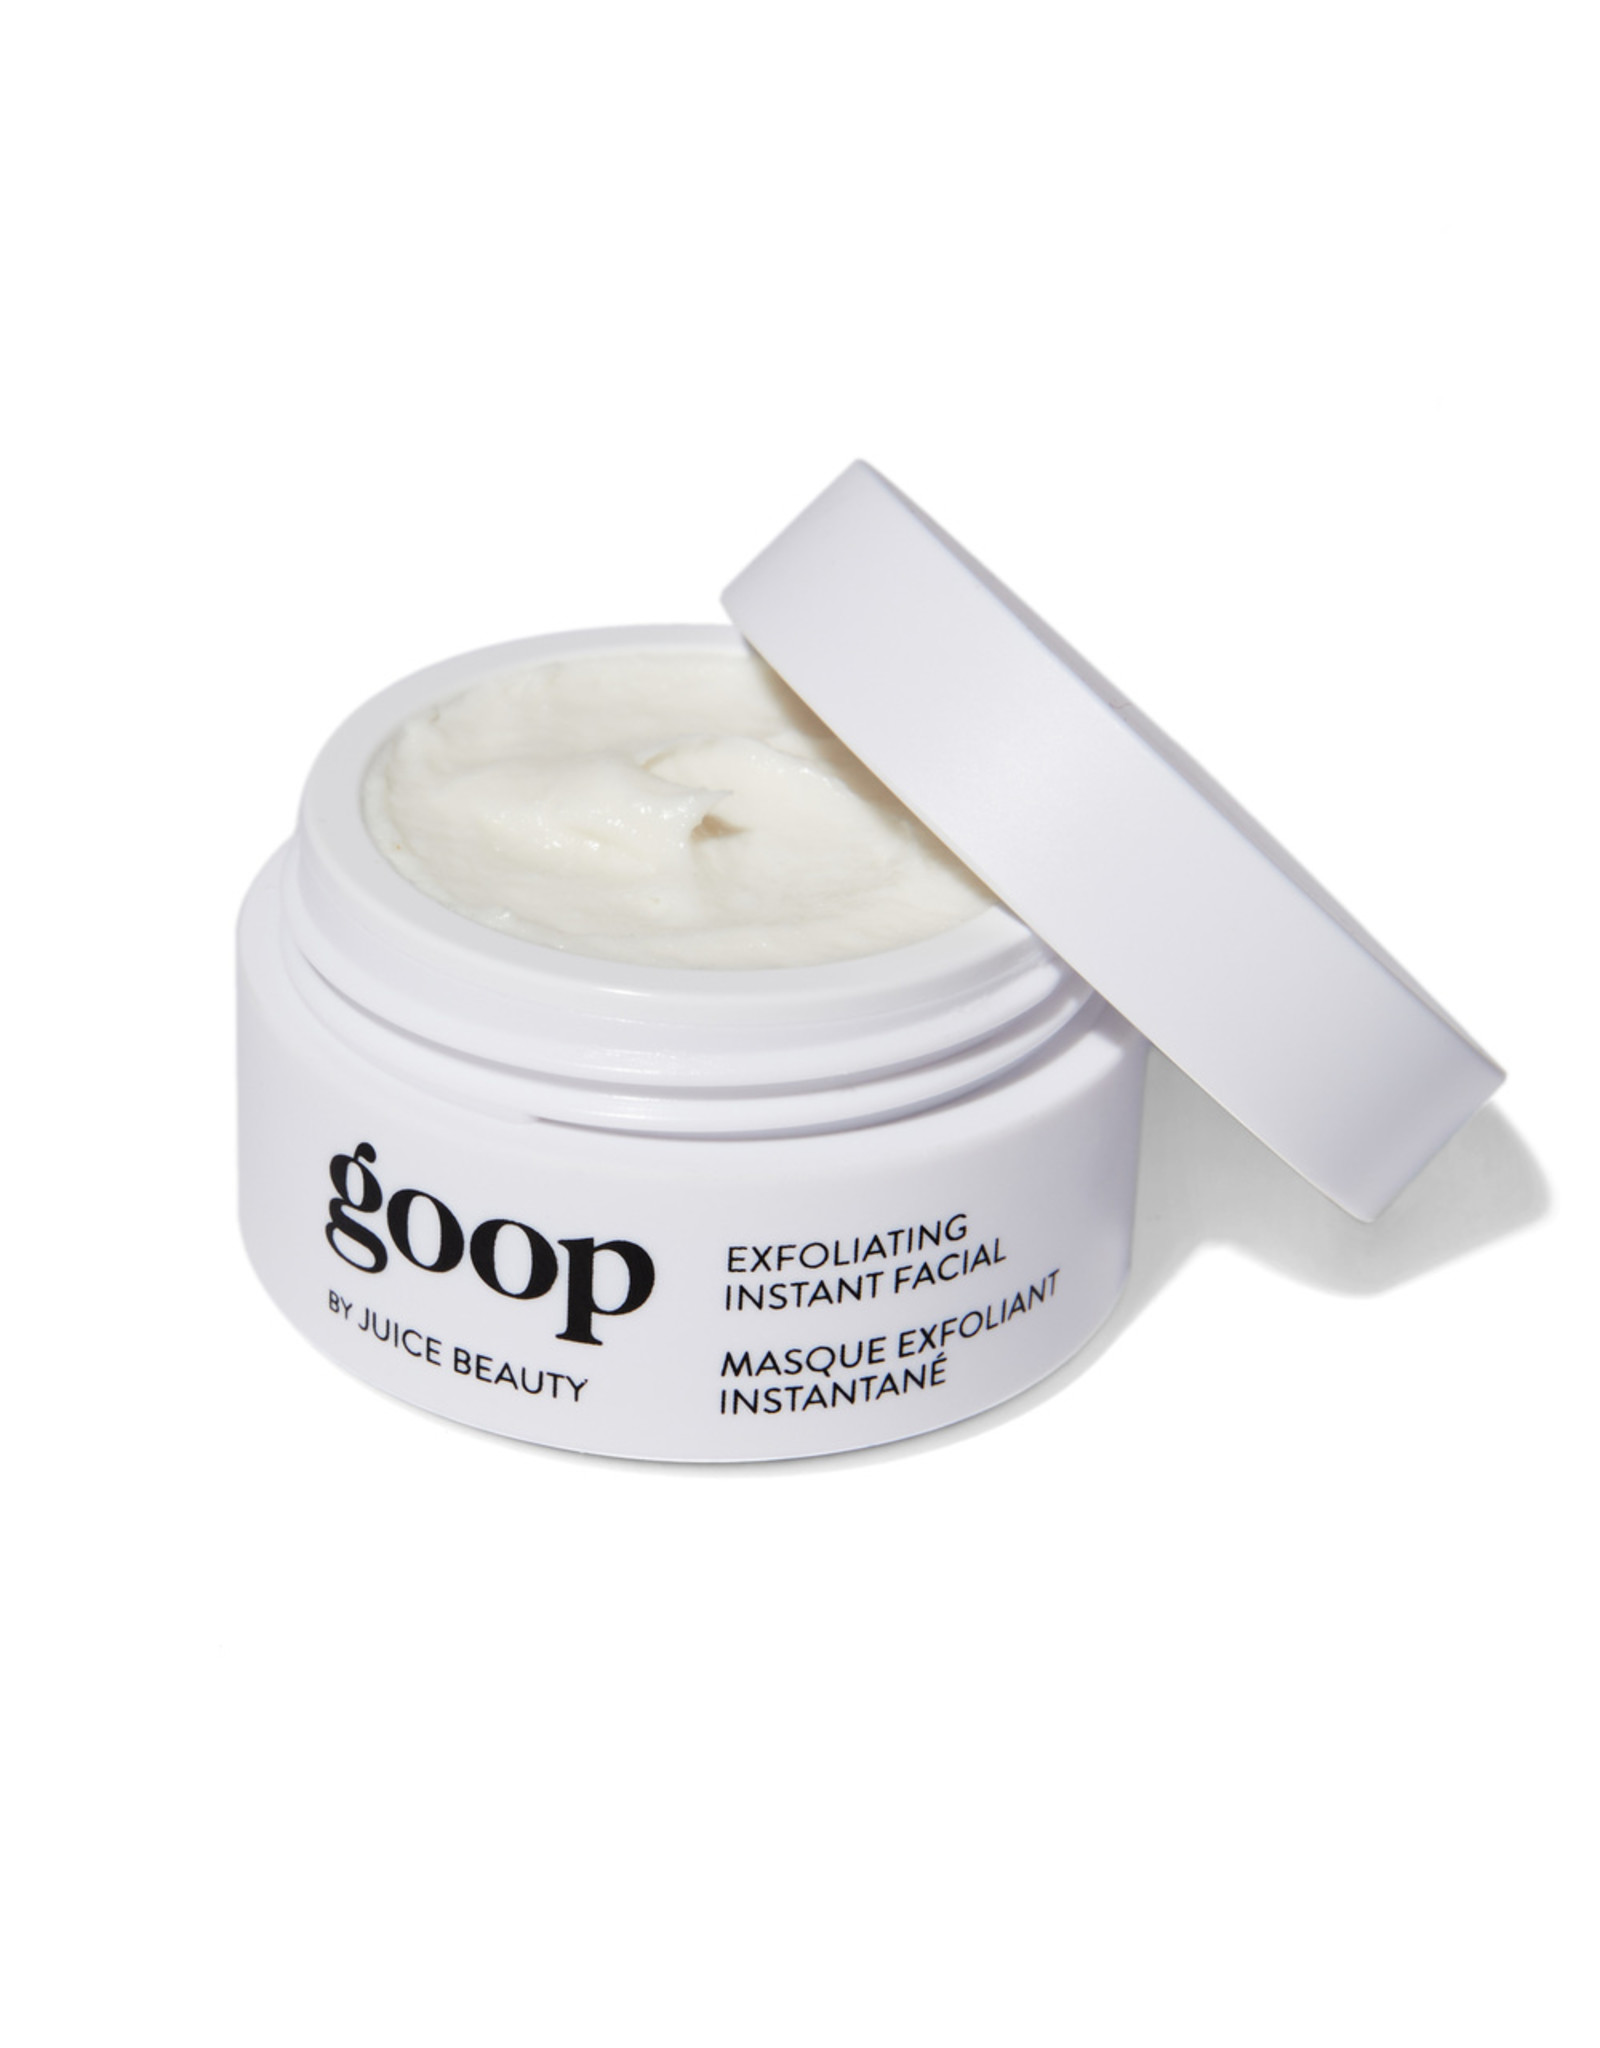 Goop by Juice Beauty goop Beauty Exfoliating Instant Facial 0.5 fl oz Mini